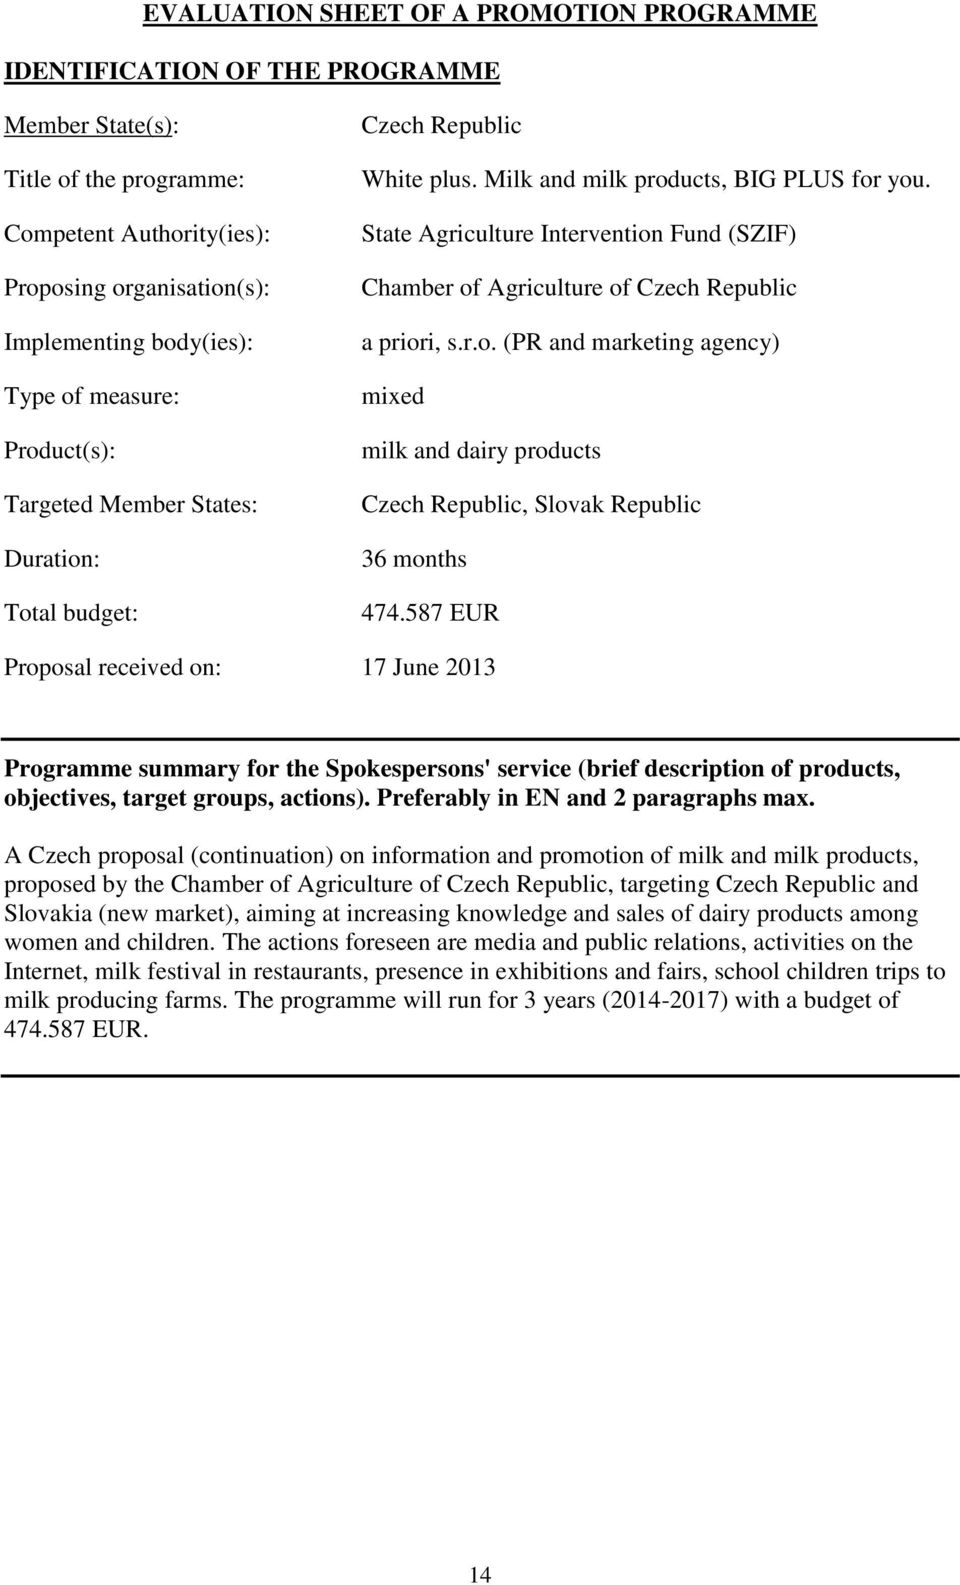 State Agriculture Intervention Fund (SZIF) Chamber of Agriculture of Czech Republic a priori, s.r.o. (PR and marketing agency) mixed milk and dairy products Czech Republic, Slovak Republic 36 months 474.